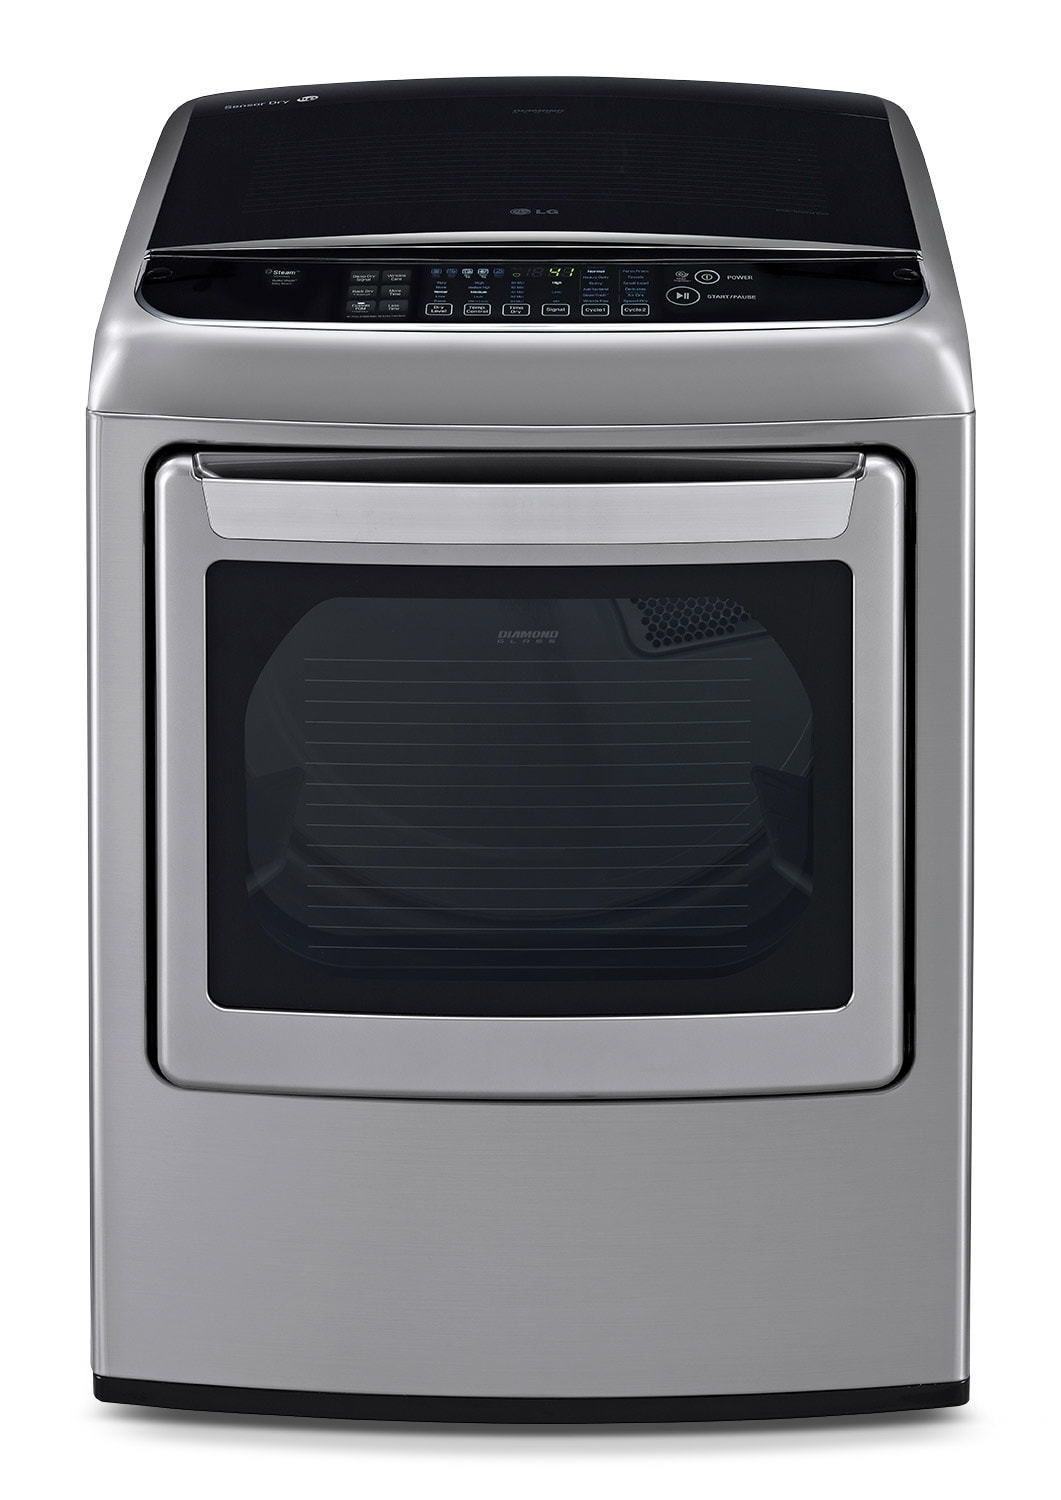 Washers and Dryers - LG 7.3 Cu. Ft. Electric Steam Dryer - Graphite Steel